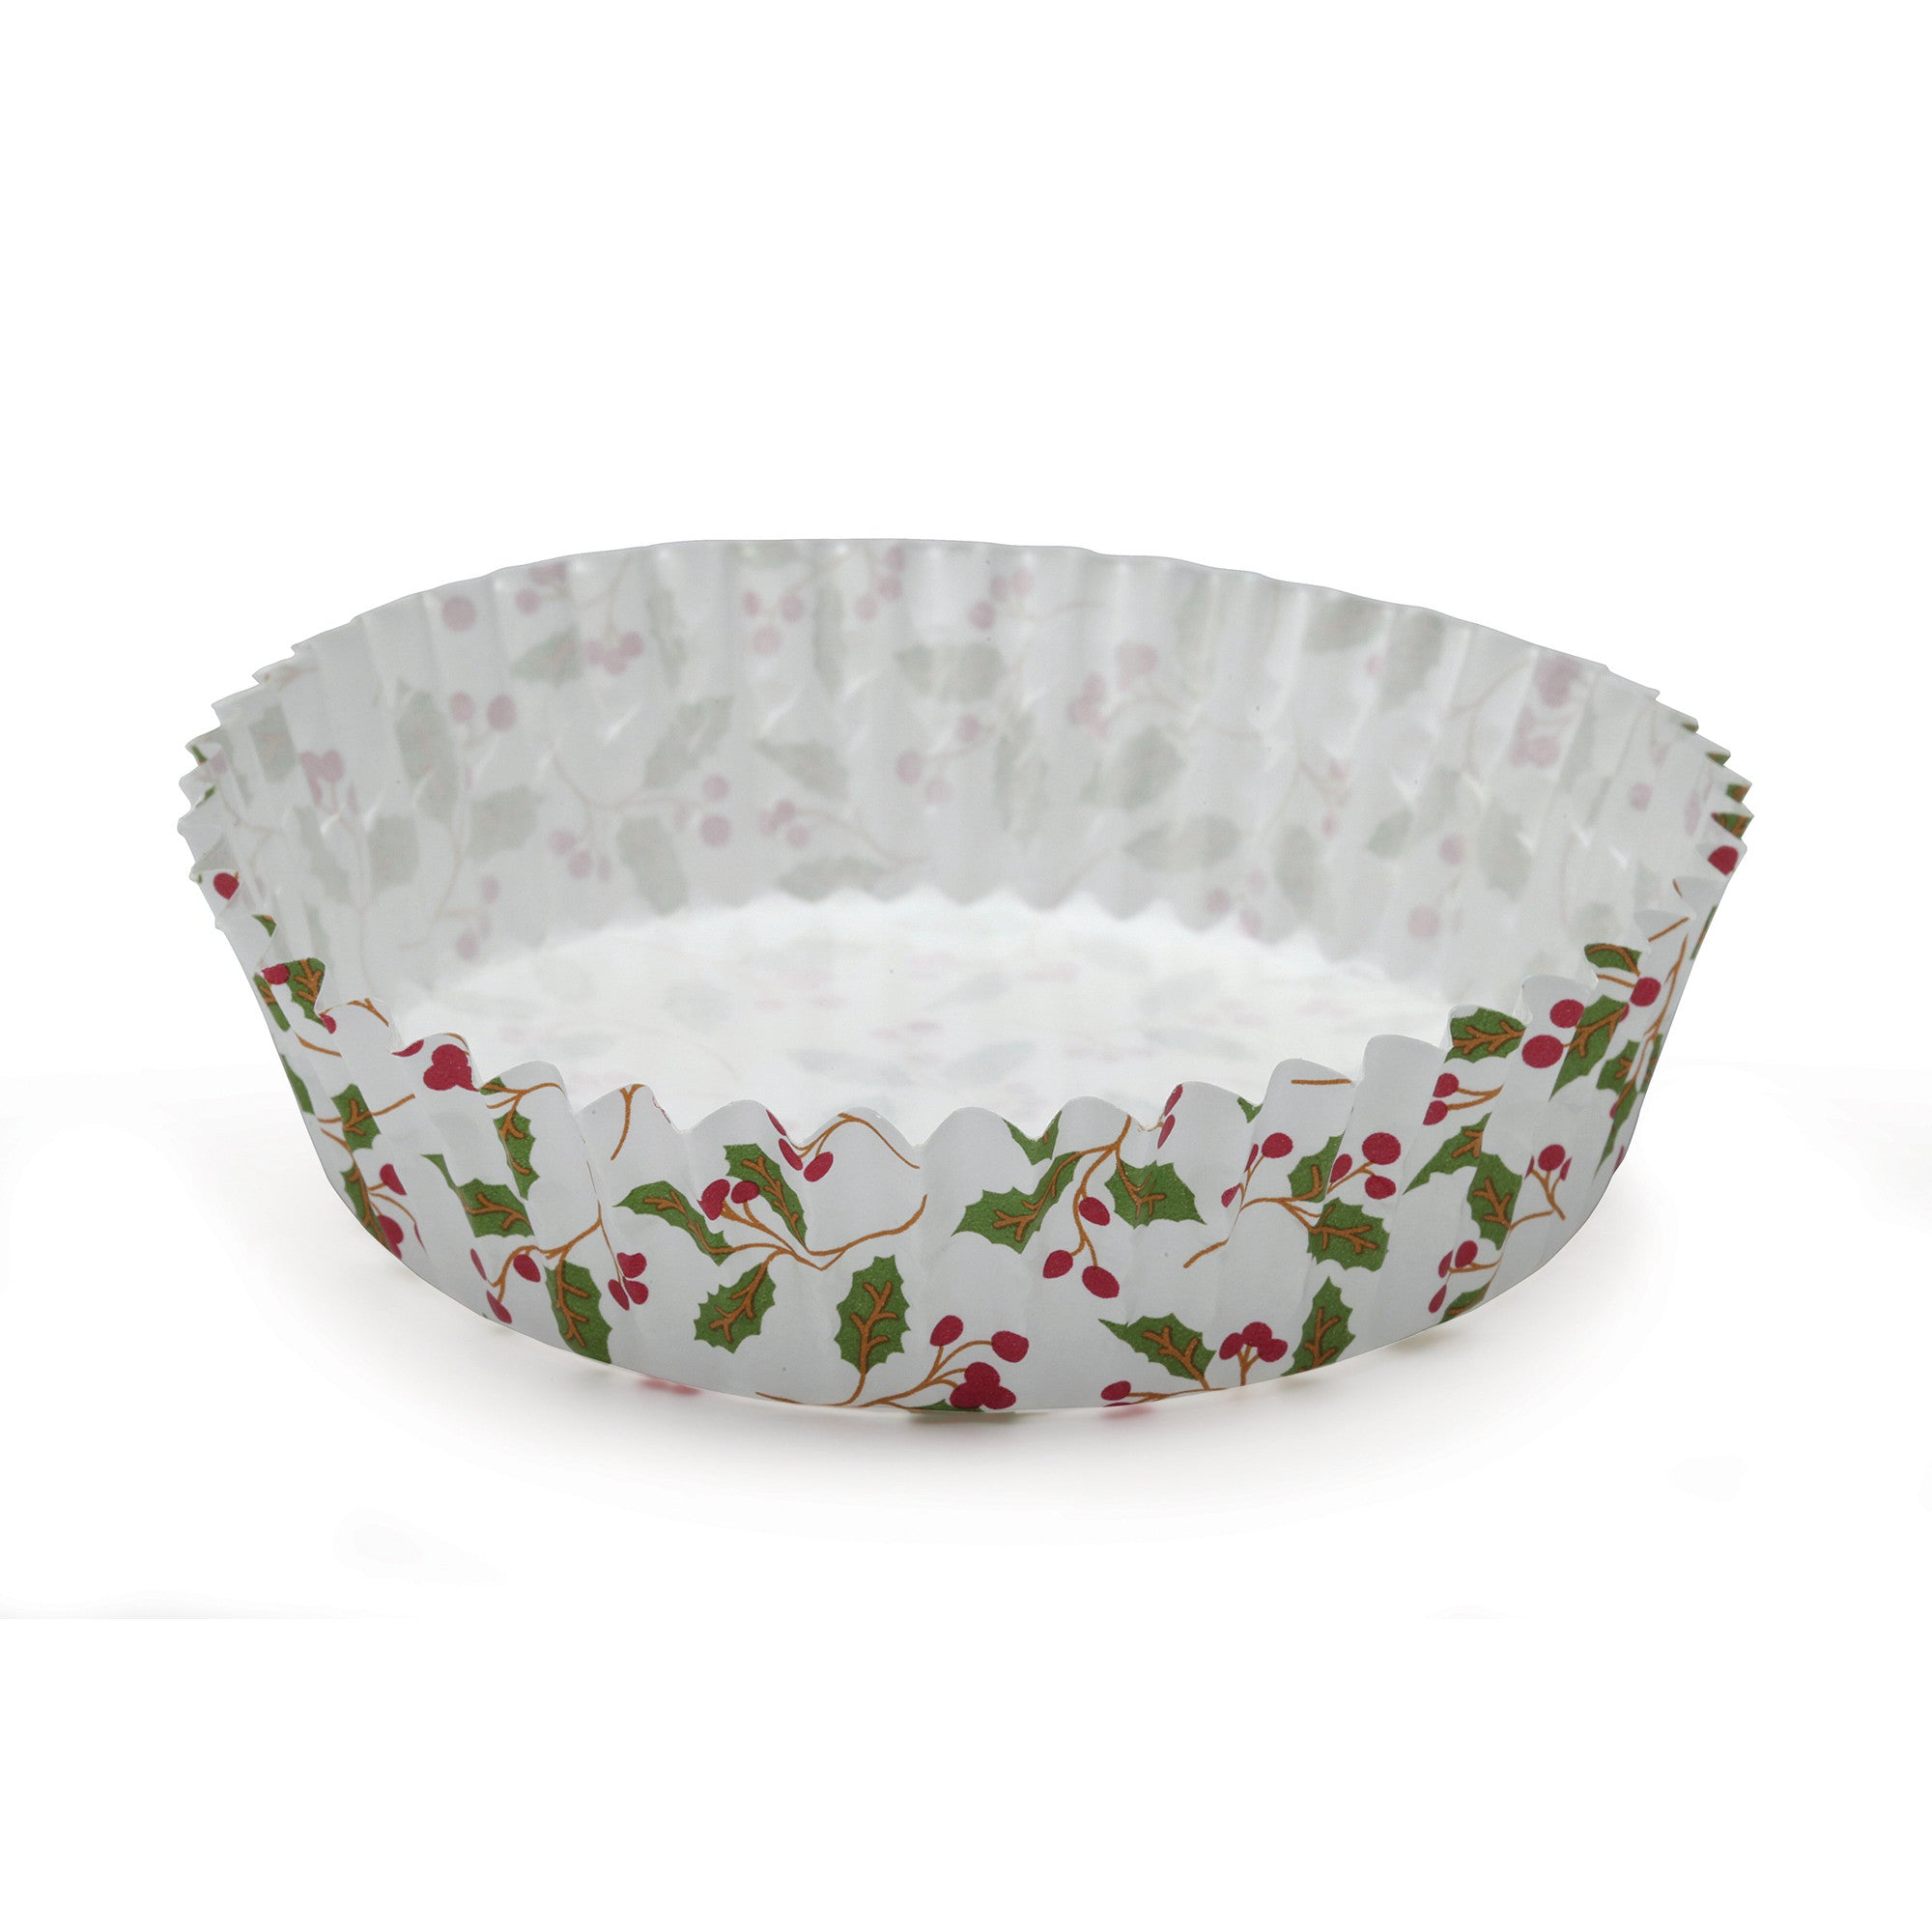 Ruffled Baking Cups, PTC10030HOL - Welcome Home Brands